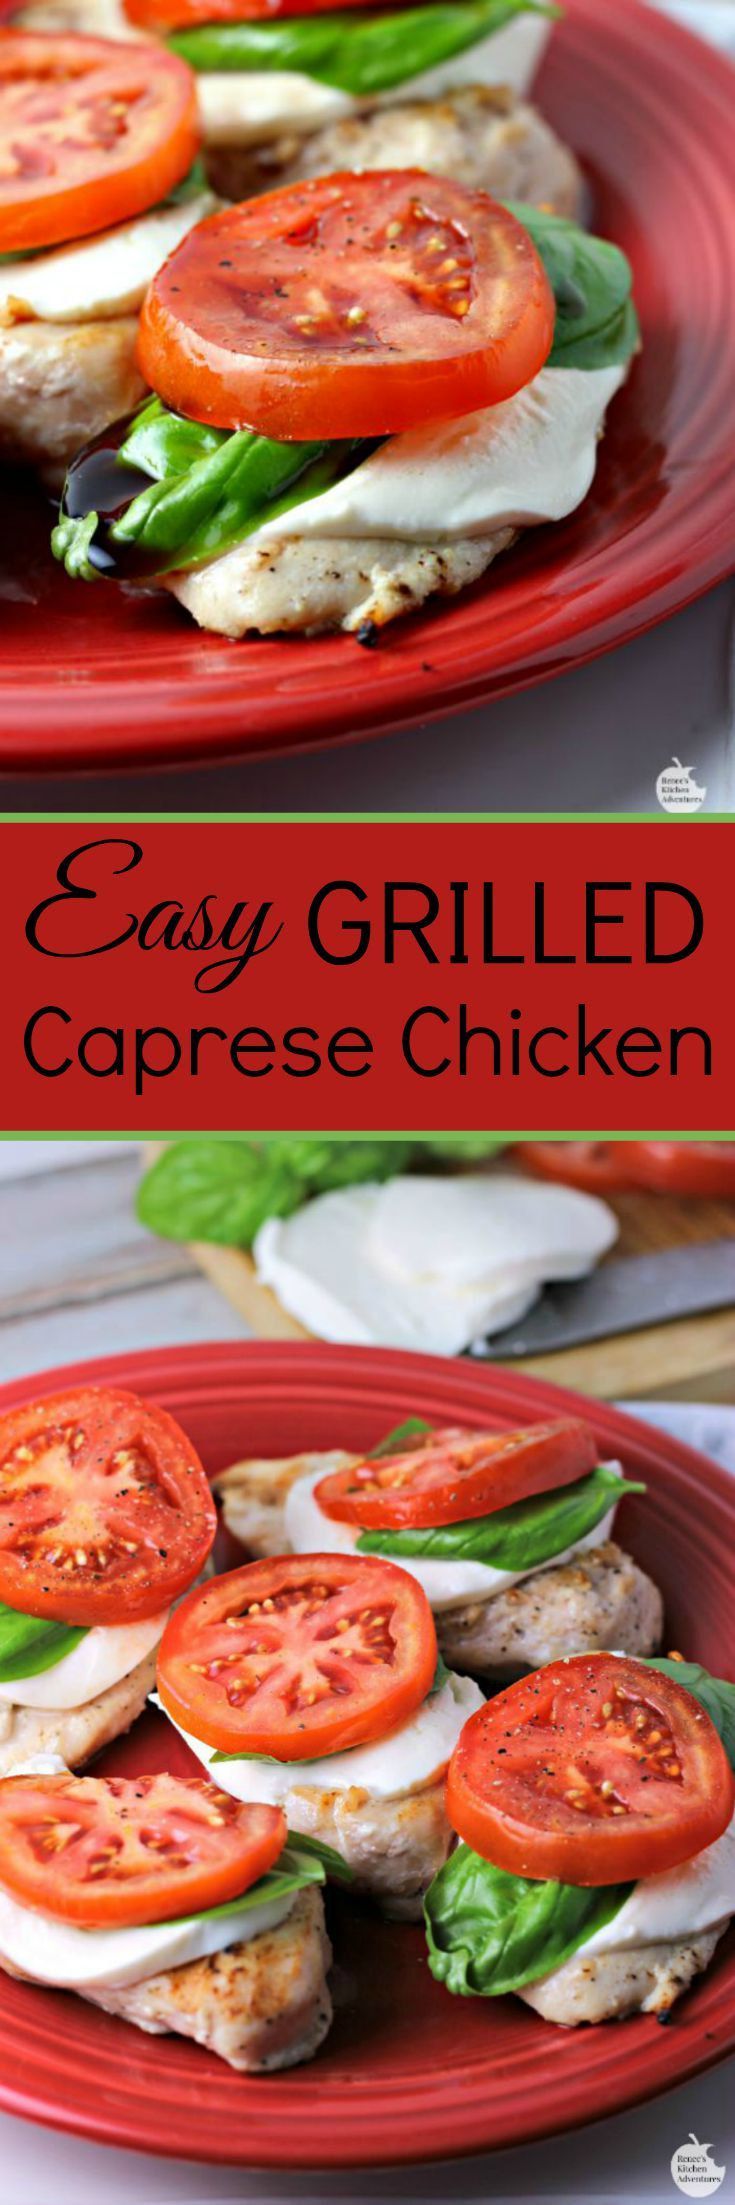 Easy Grilled Caprese Chicken | by Renee's Kitchen Adventures - Easy, healthy recipe for chicken breasts that uses some of summer's fresh harvest, fresh tomatoes, basil and mozzarella cheese! YUM!